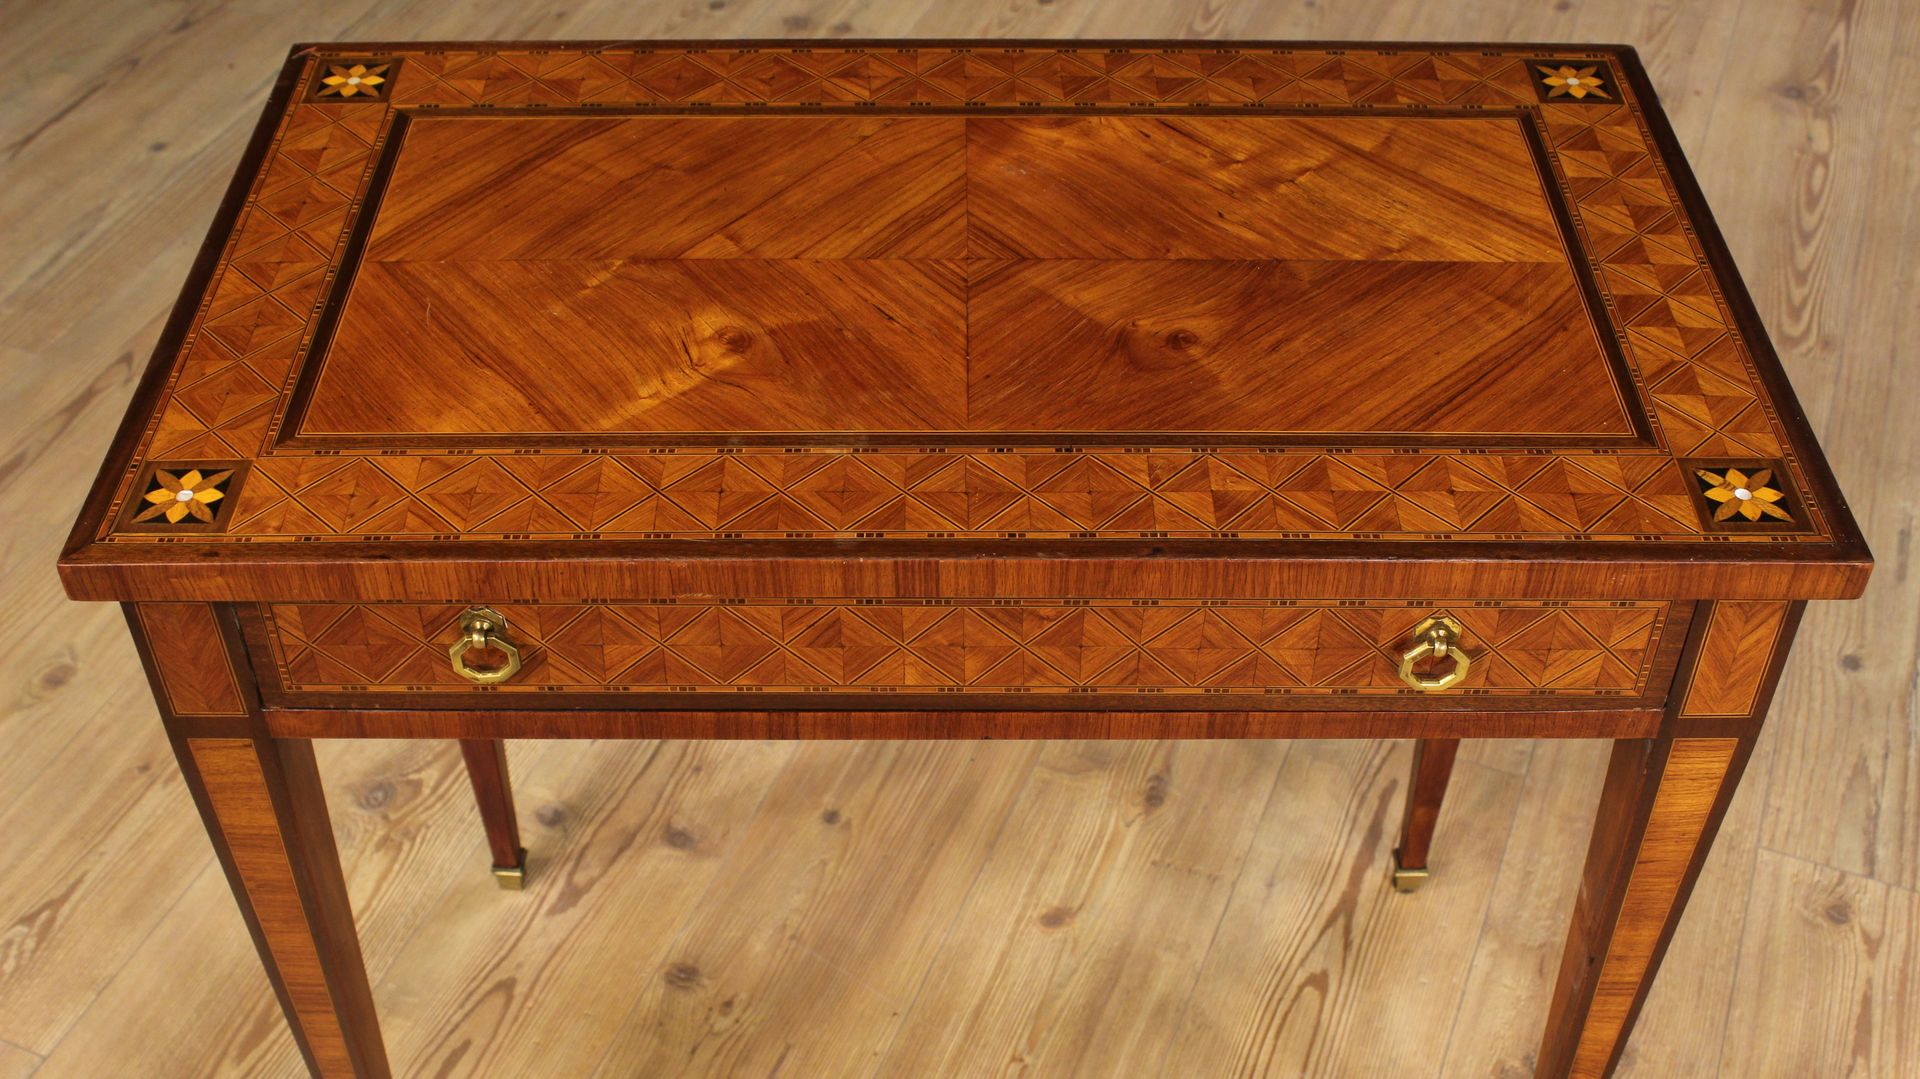 Wood Inlay Top Table Designs : Italian low table with wood inlay s for sale at pamono